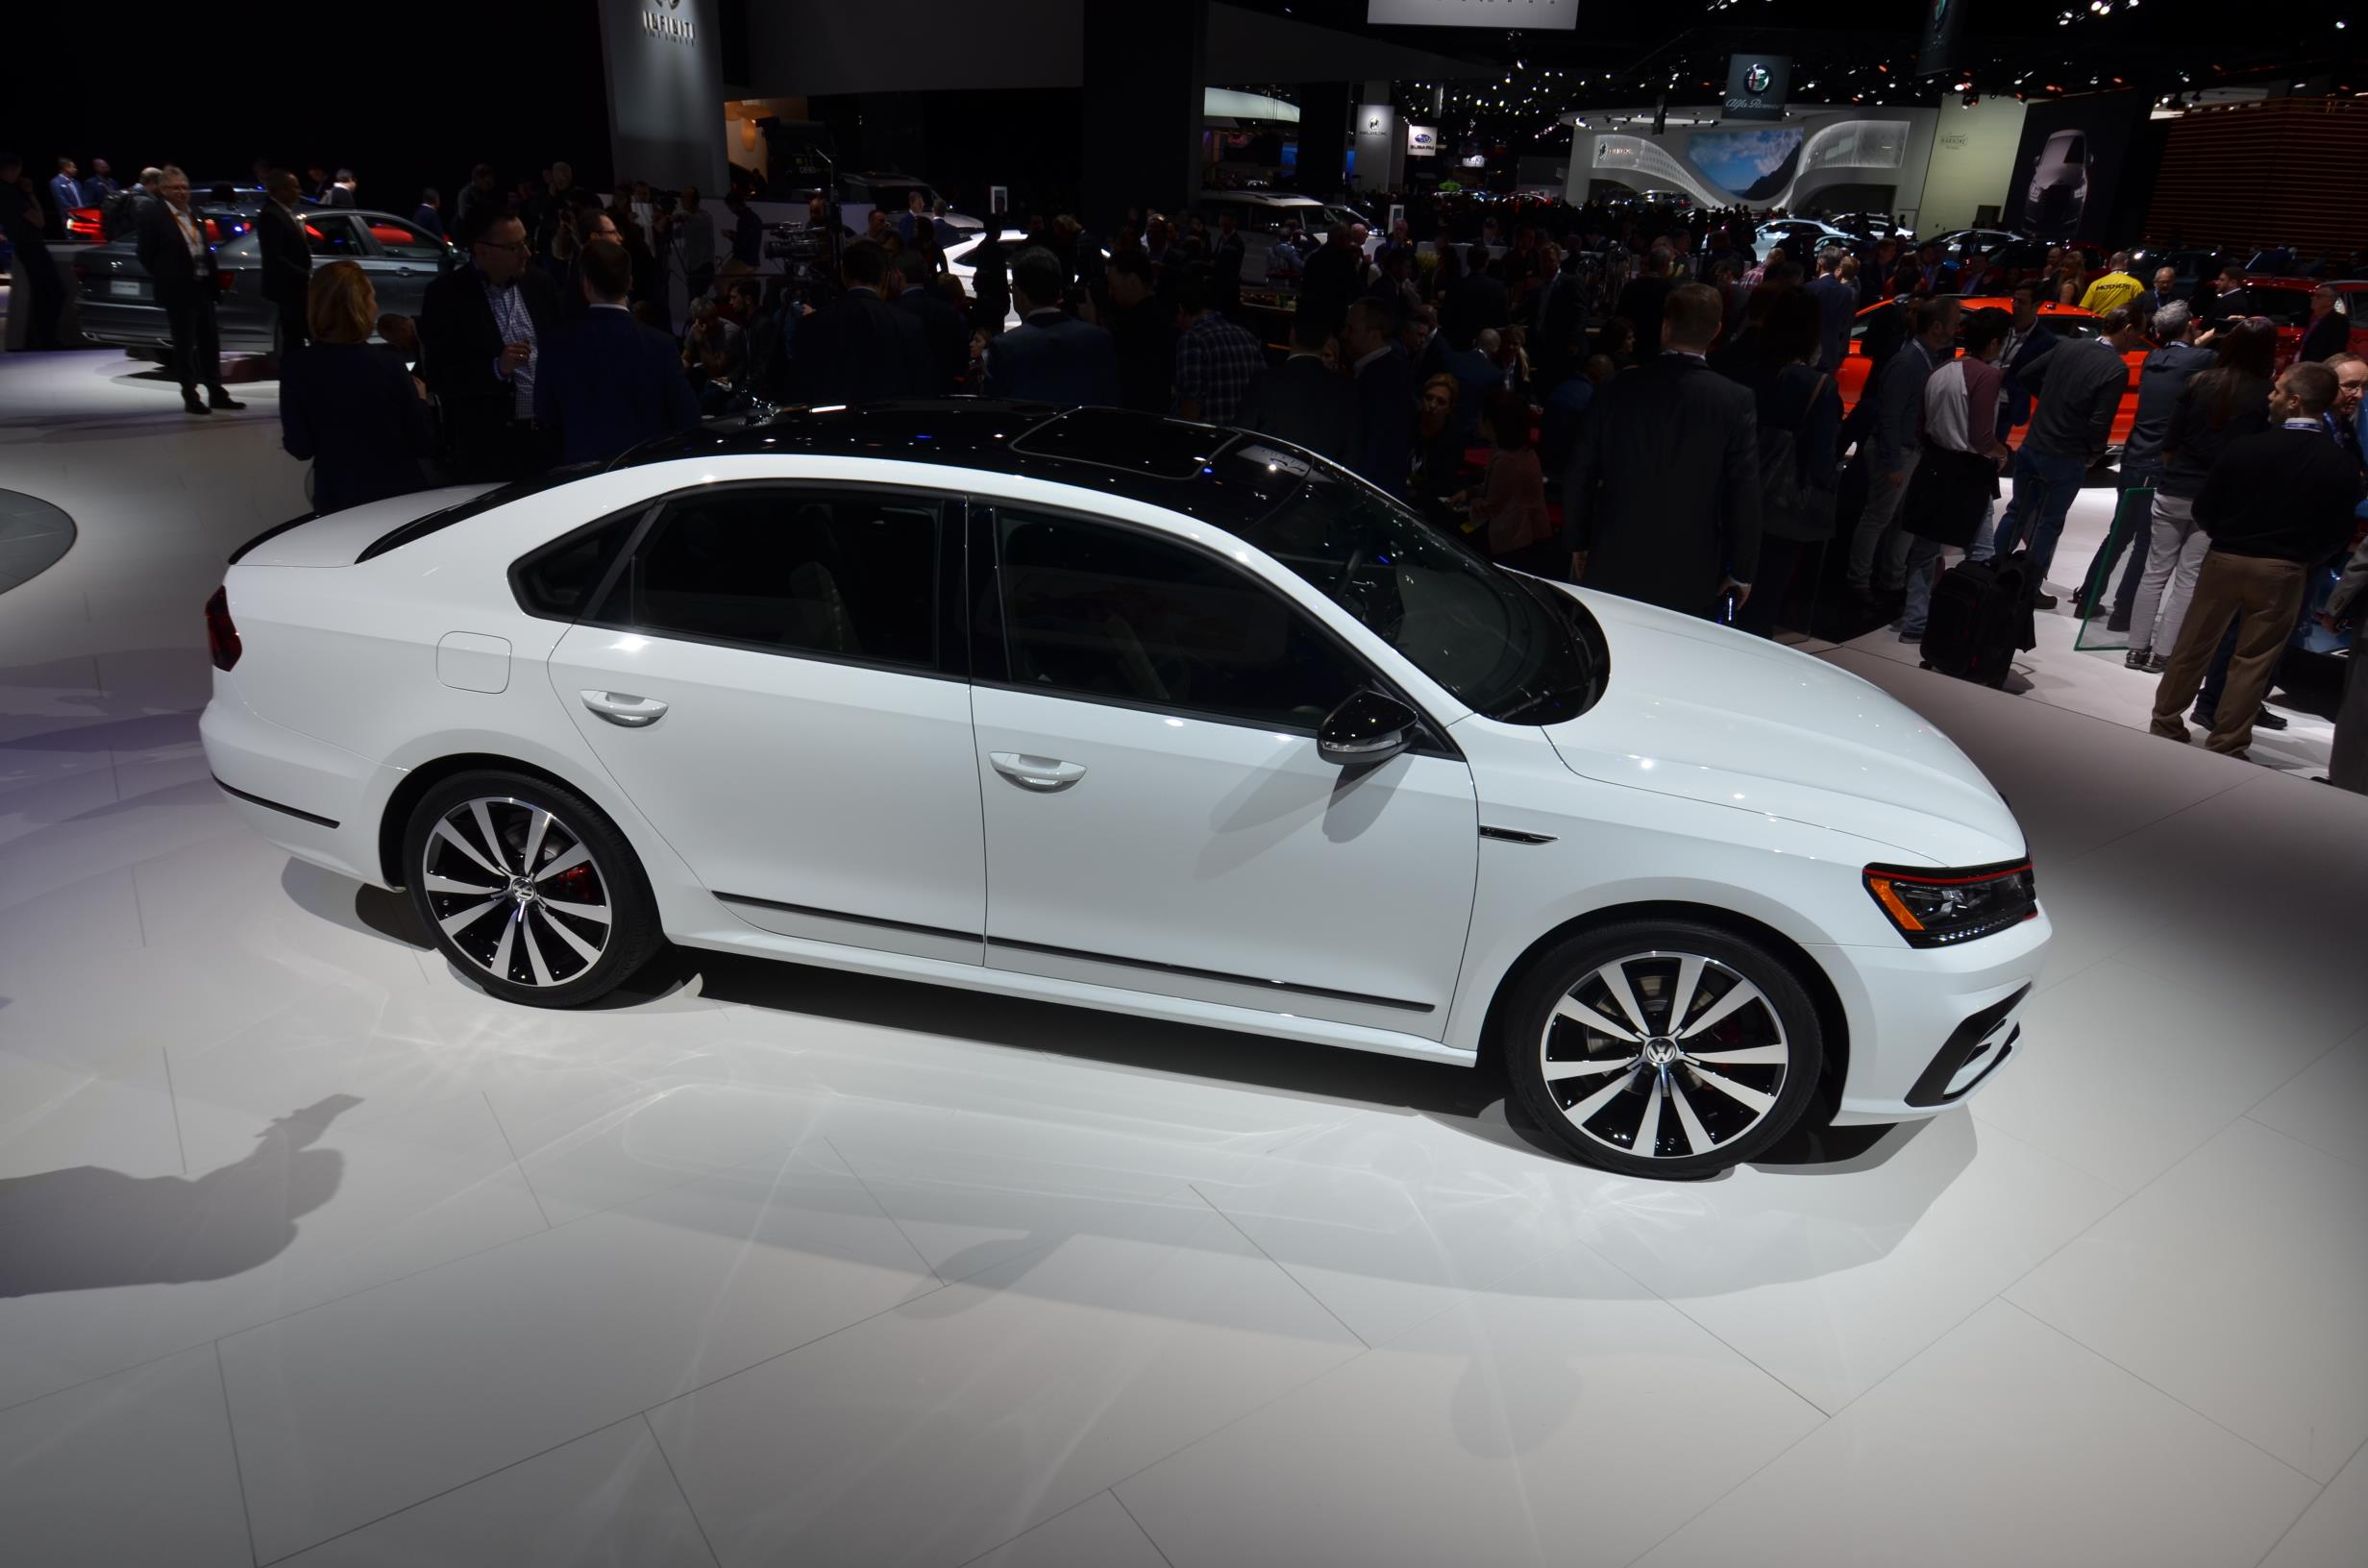 Volkswagen Passat Production Idled At Chattanooga As Sales Drop In - Car show chattanooga 2018